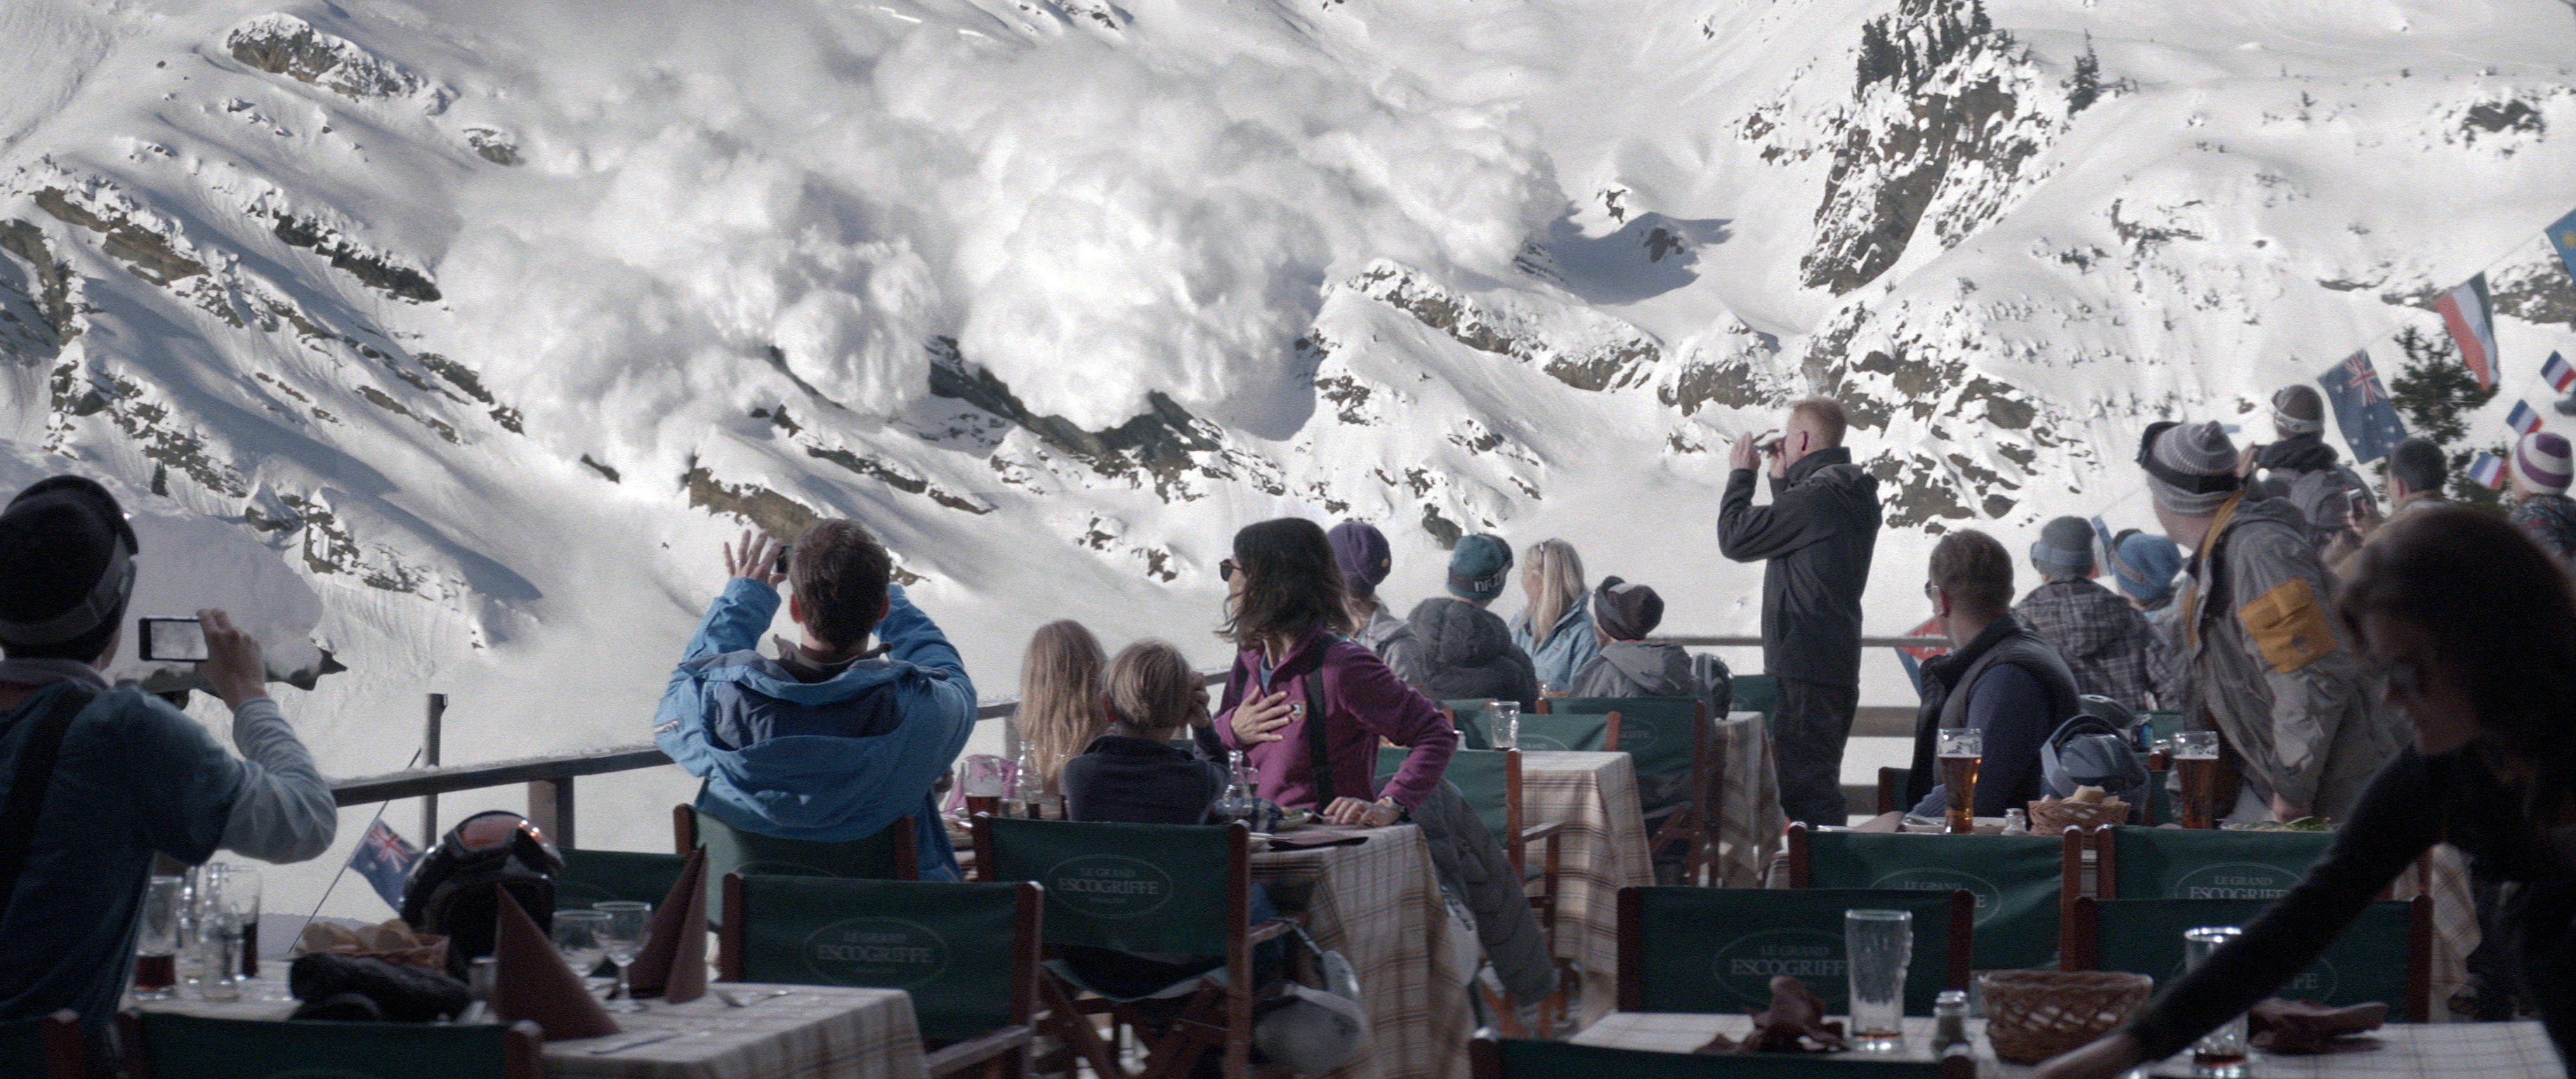 """COURTESY MAGNOLIA PICTURESA Swedish family on vacation at a ski resort goes through some dramatic experiences in """"Force Majeure"""